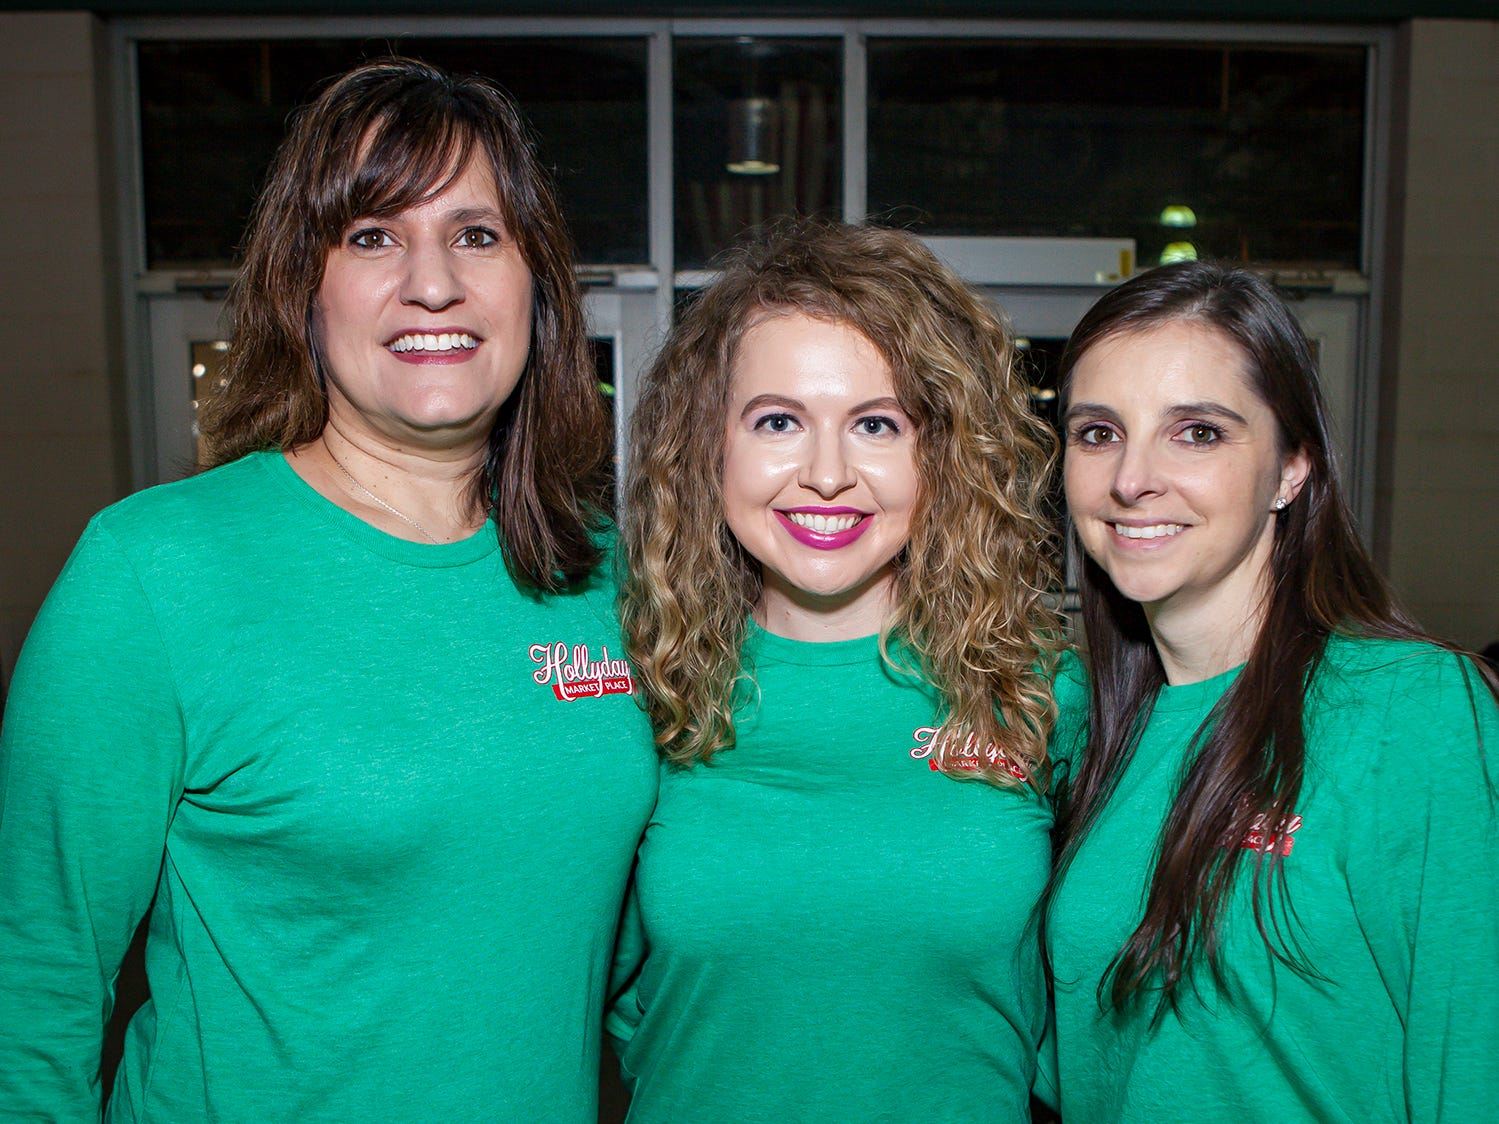 Lisa Warner, Brittany Stevens and Jaclyn Fisher at Mistletoe & Martinis, the preview party for Junior League of Murfreesboro's 2018 Hollyday Marketplace.